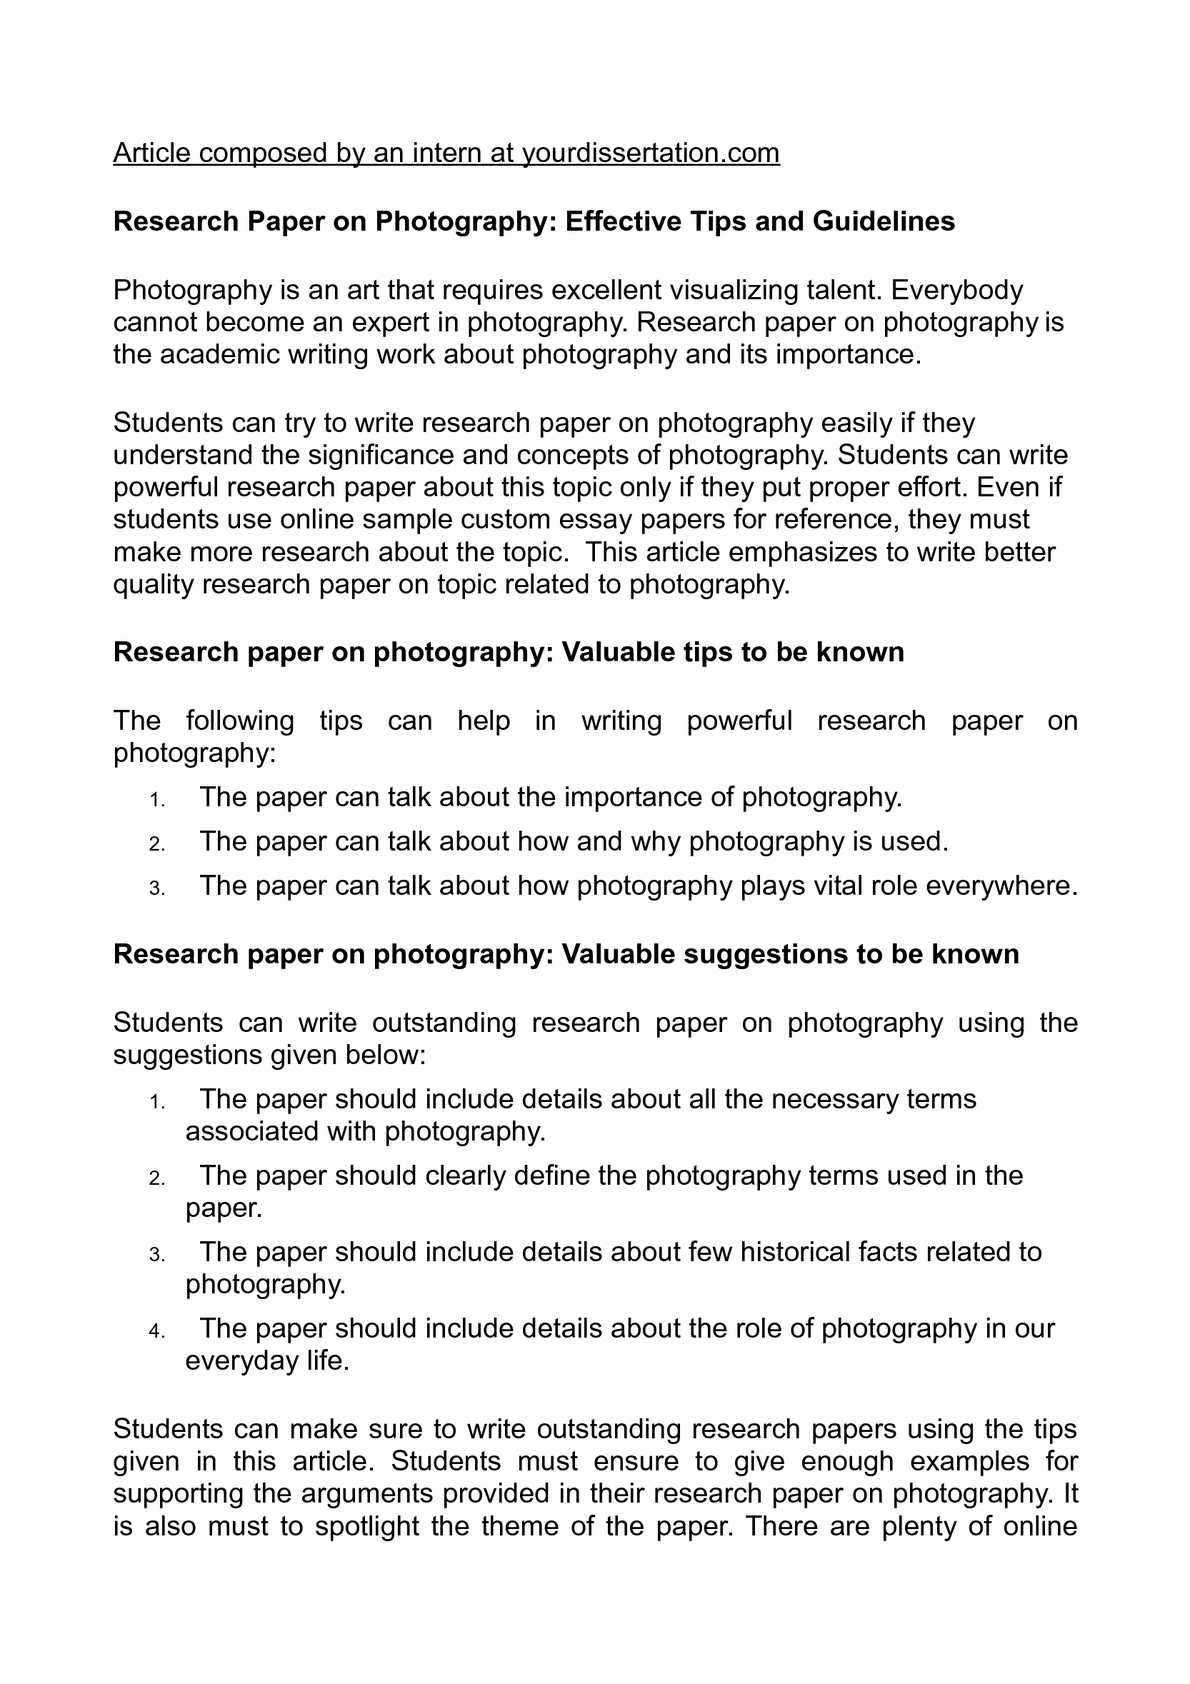 Research paper on photography